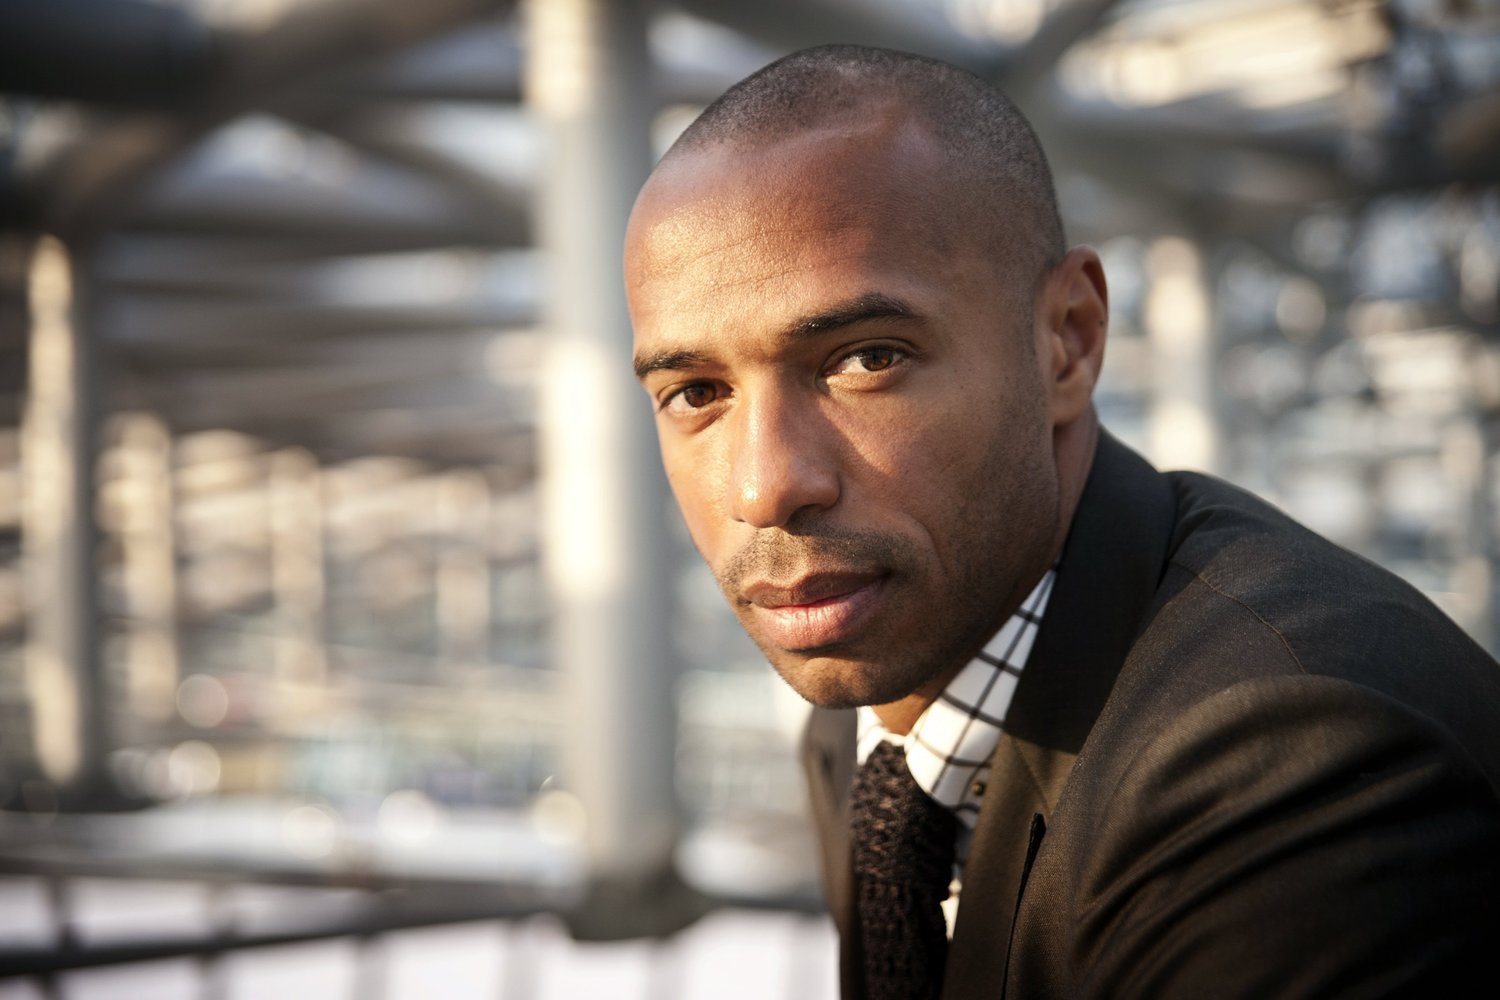 Thierry henry style